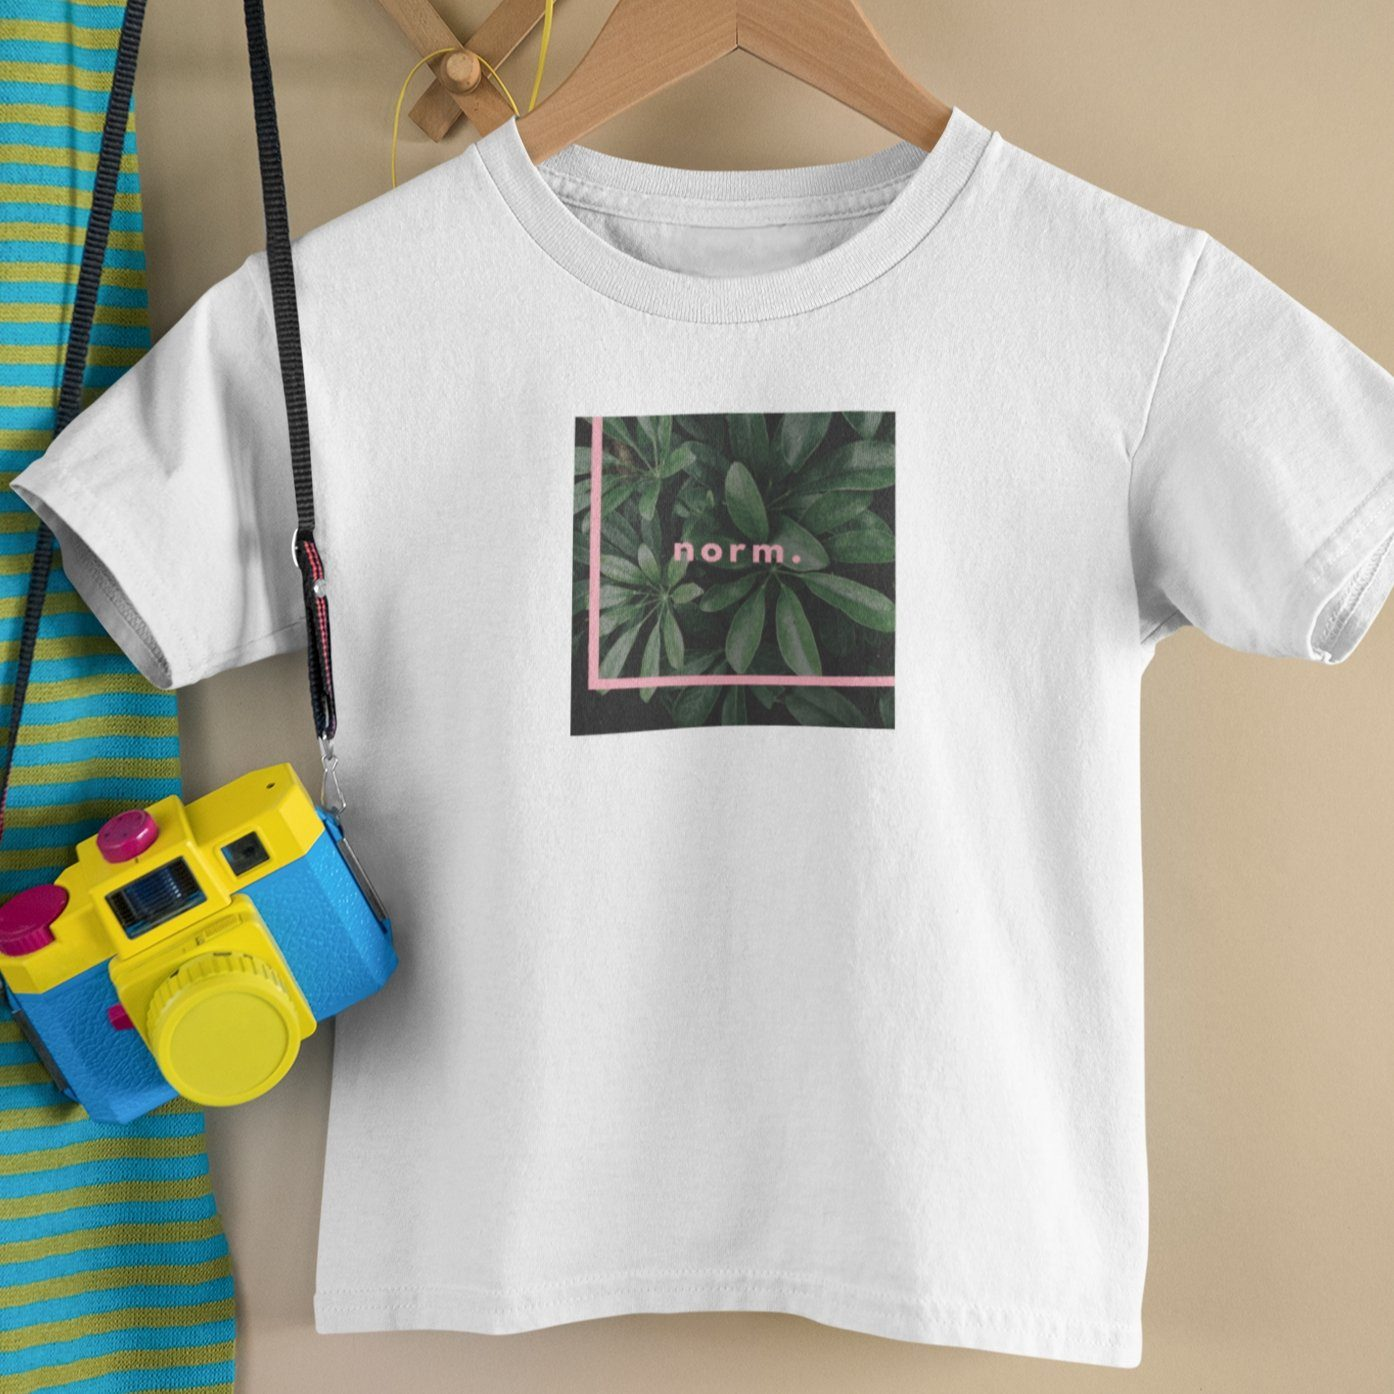 Tyler toddler tee. norm. White 2T